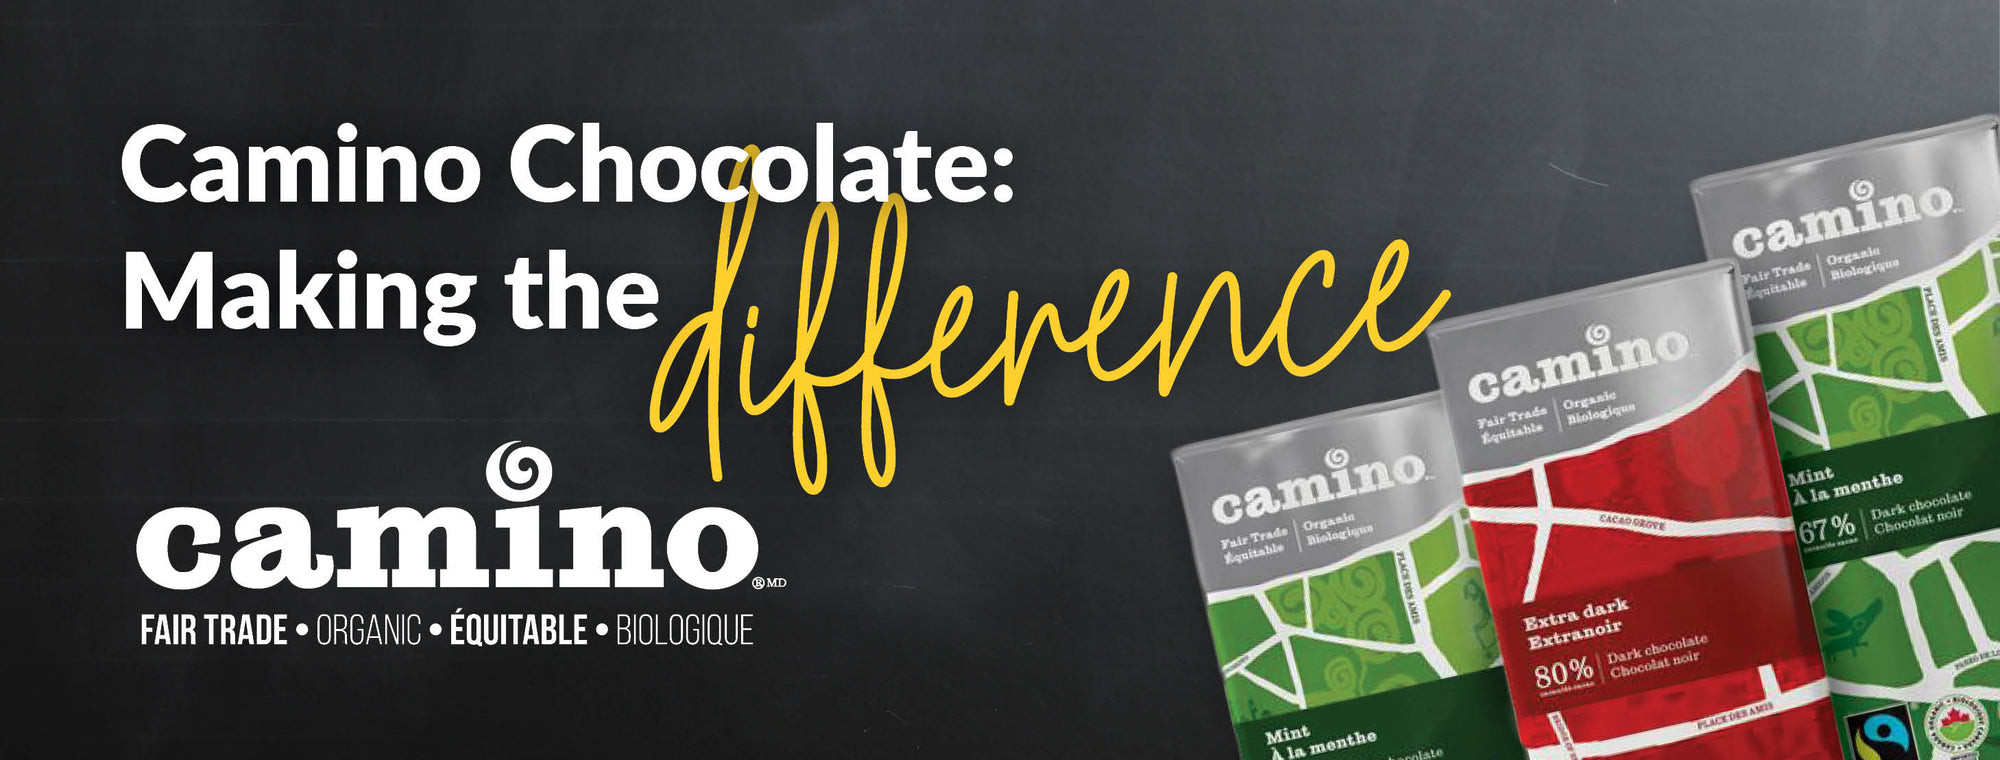 Camino Chocolate: Making The Difference